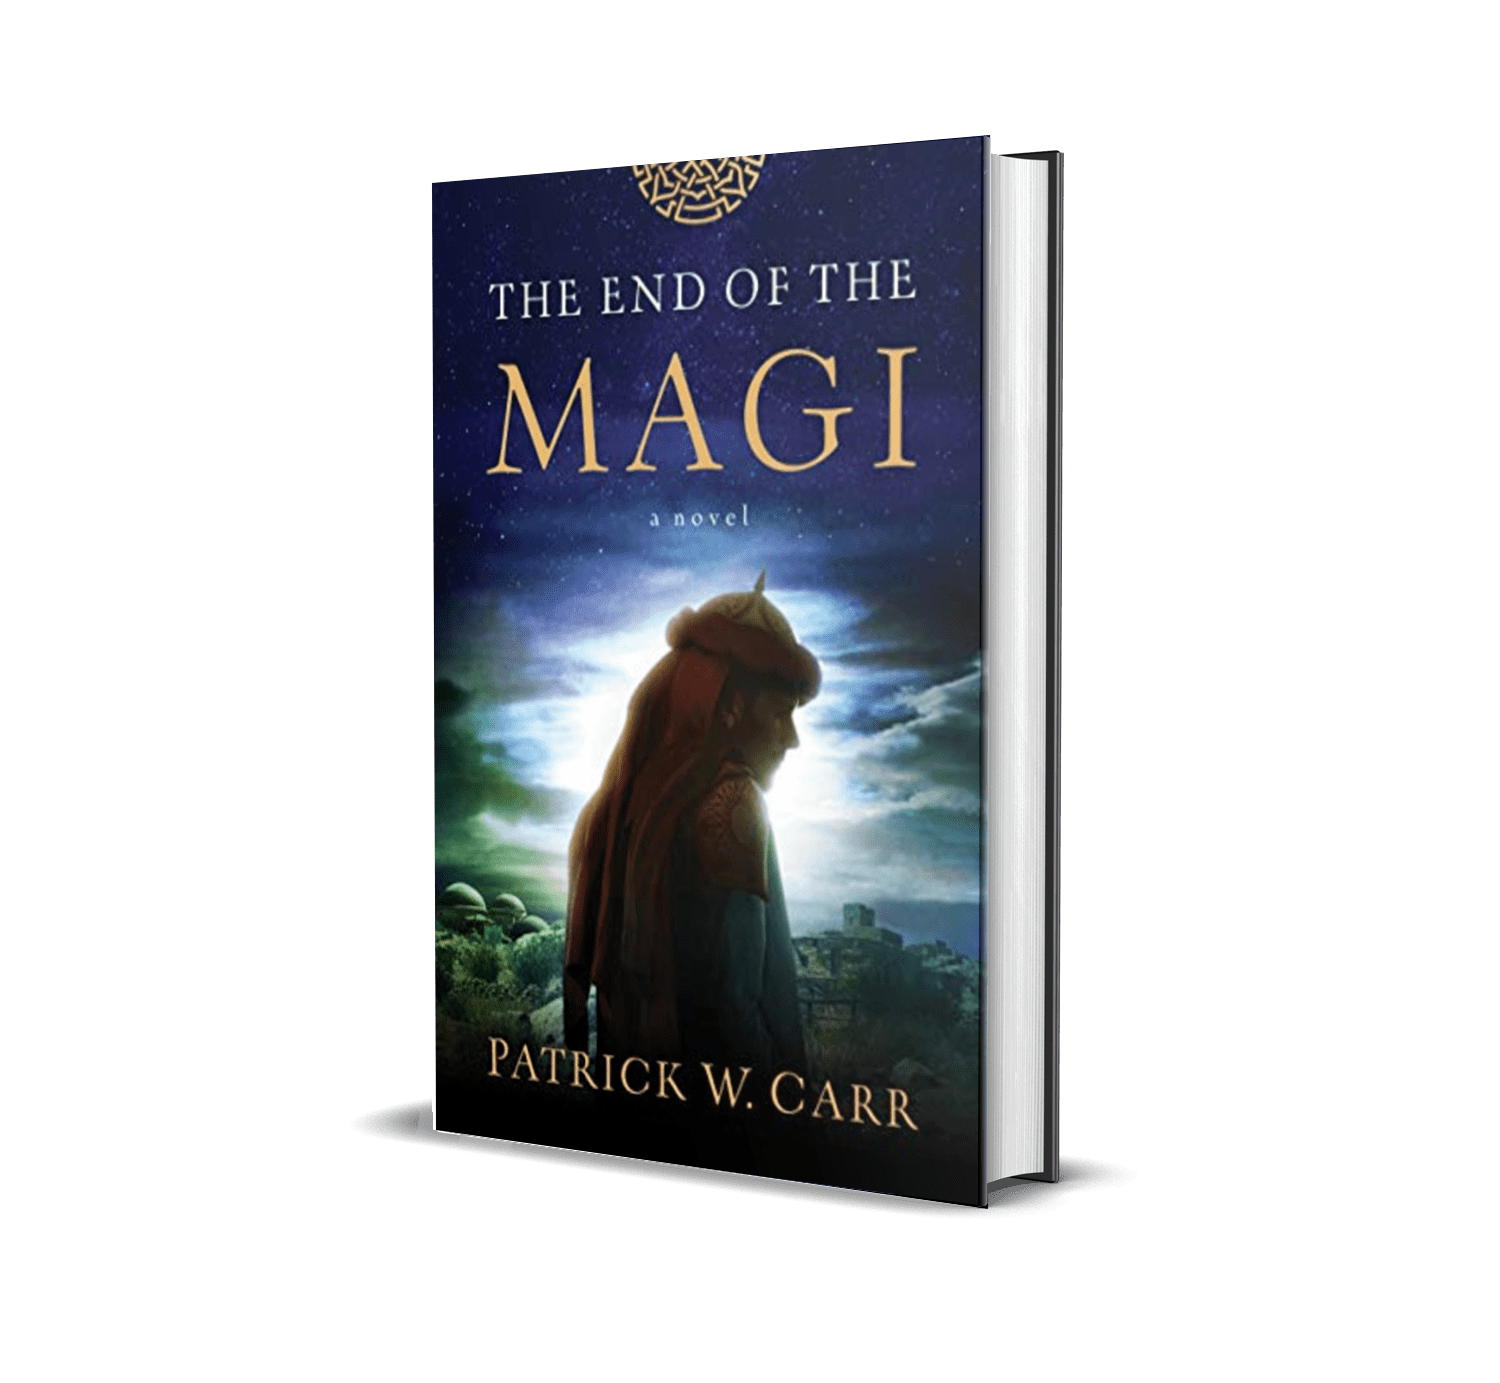 The End of the Magi